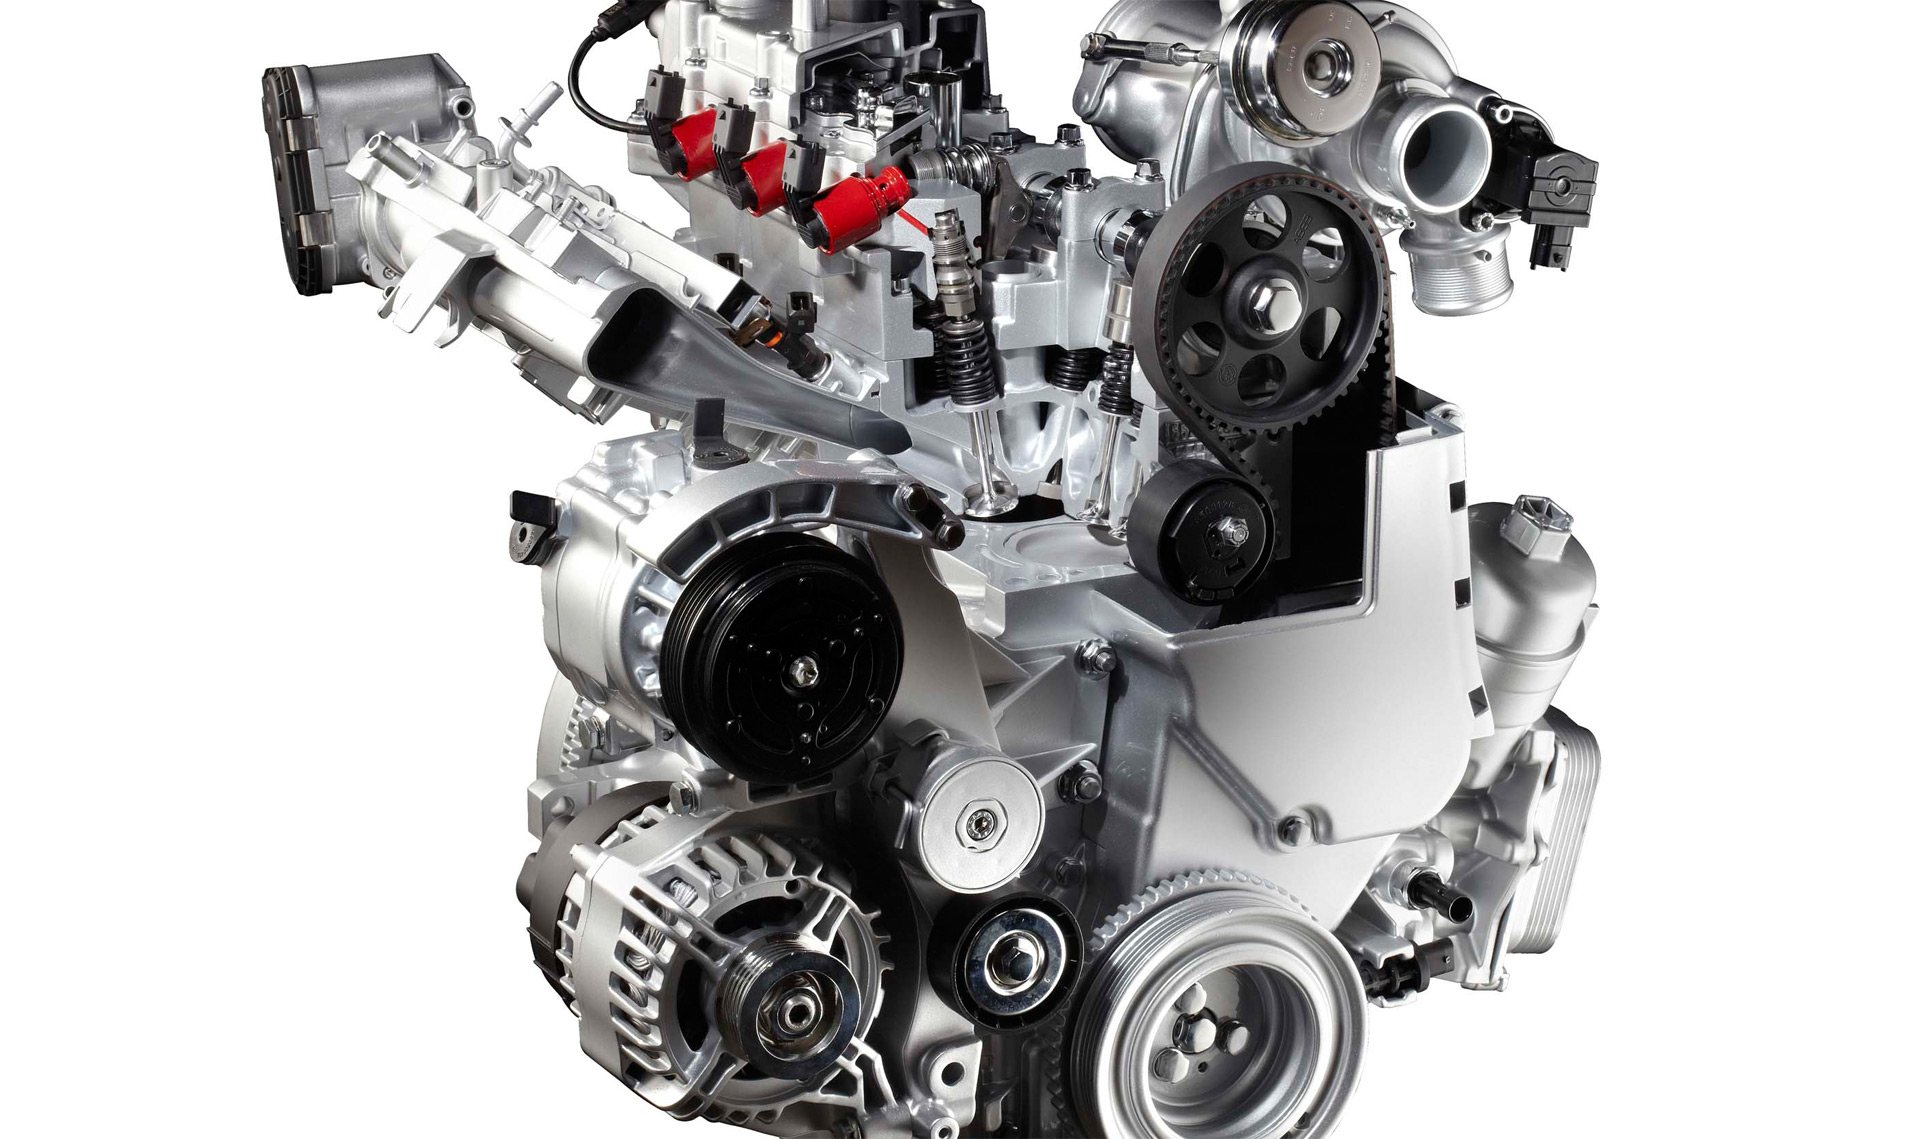 Report Fca Plans Turbo 4 Cylinder With Almost 300 Horsepower